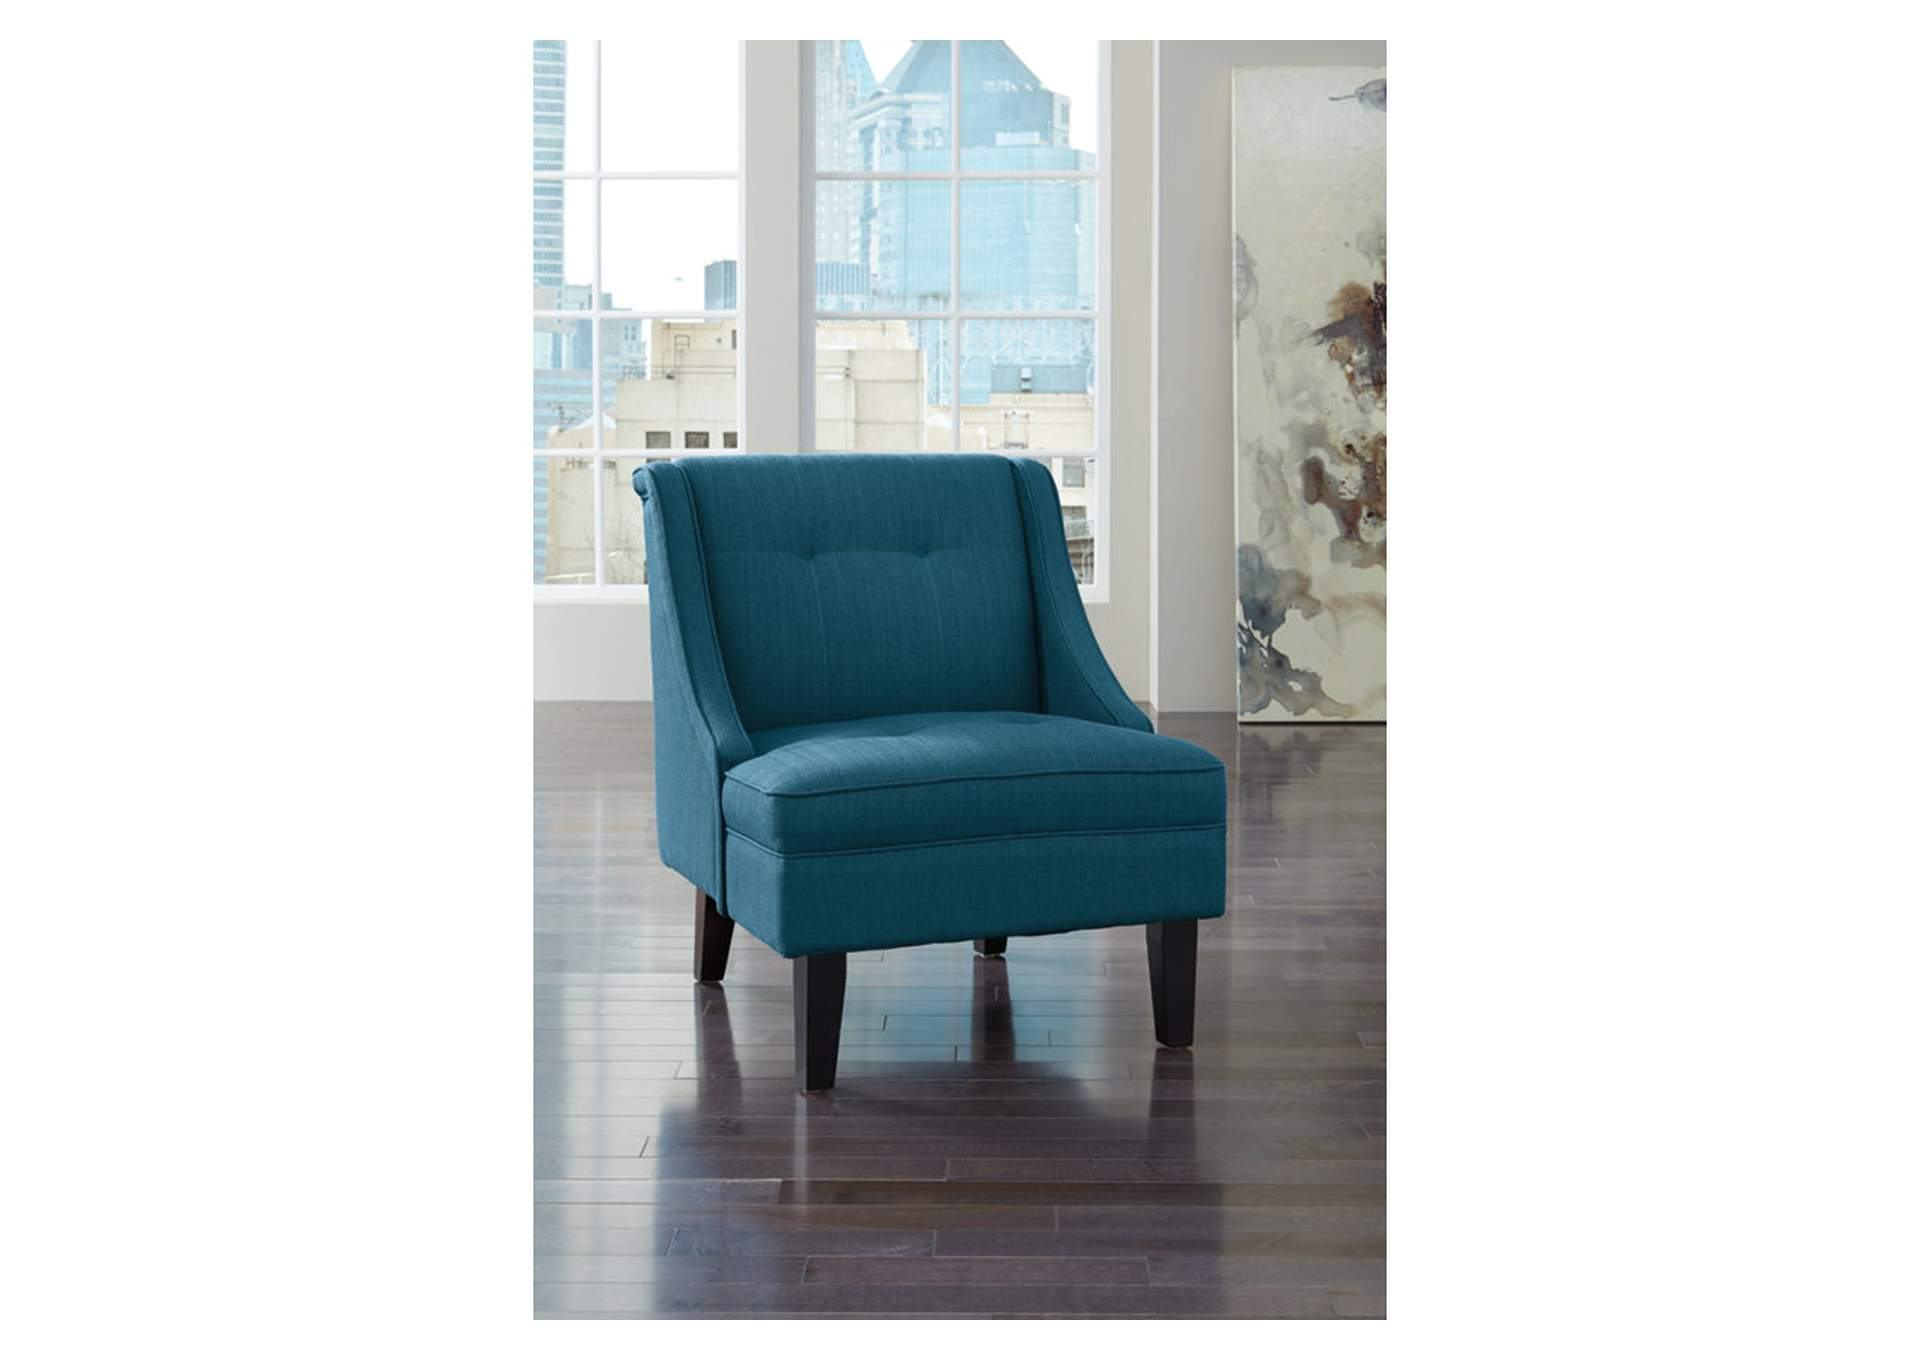 Davis home furniture asheville nc clarinda blue accent chair Davis home furniture asheville hours